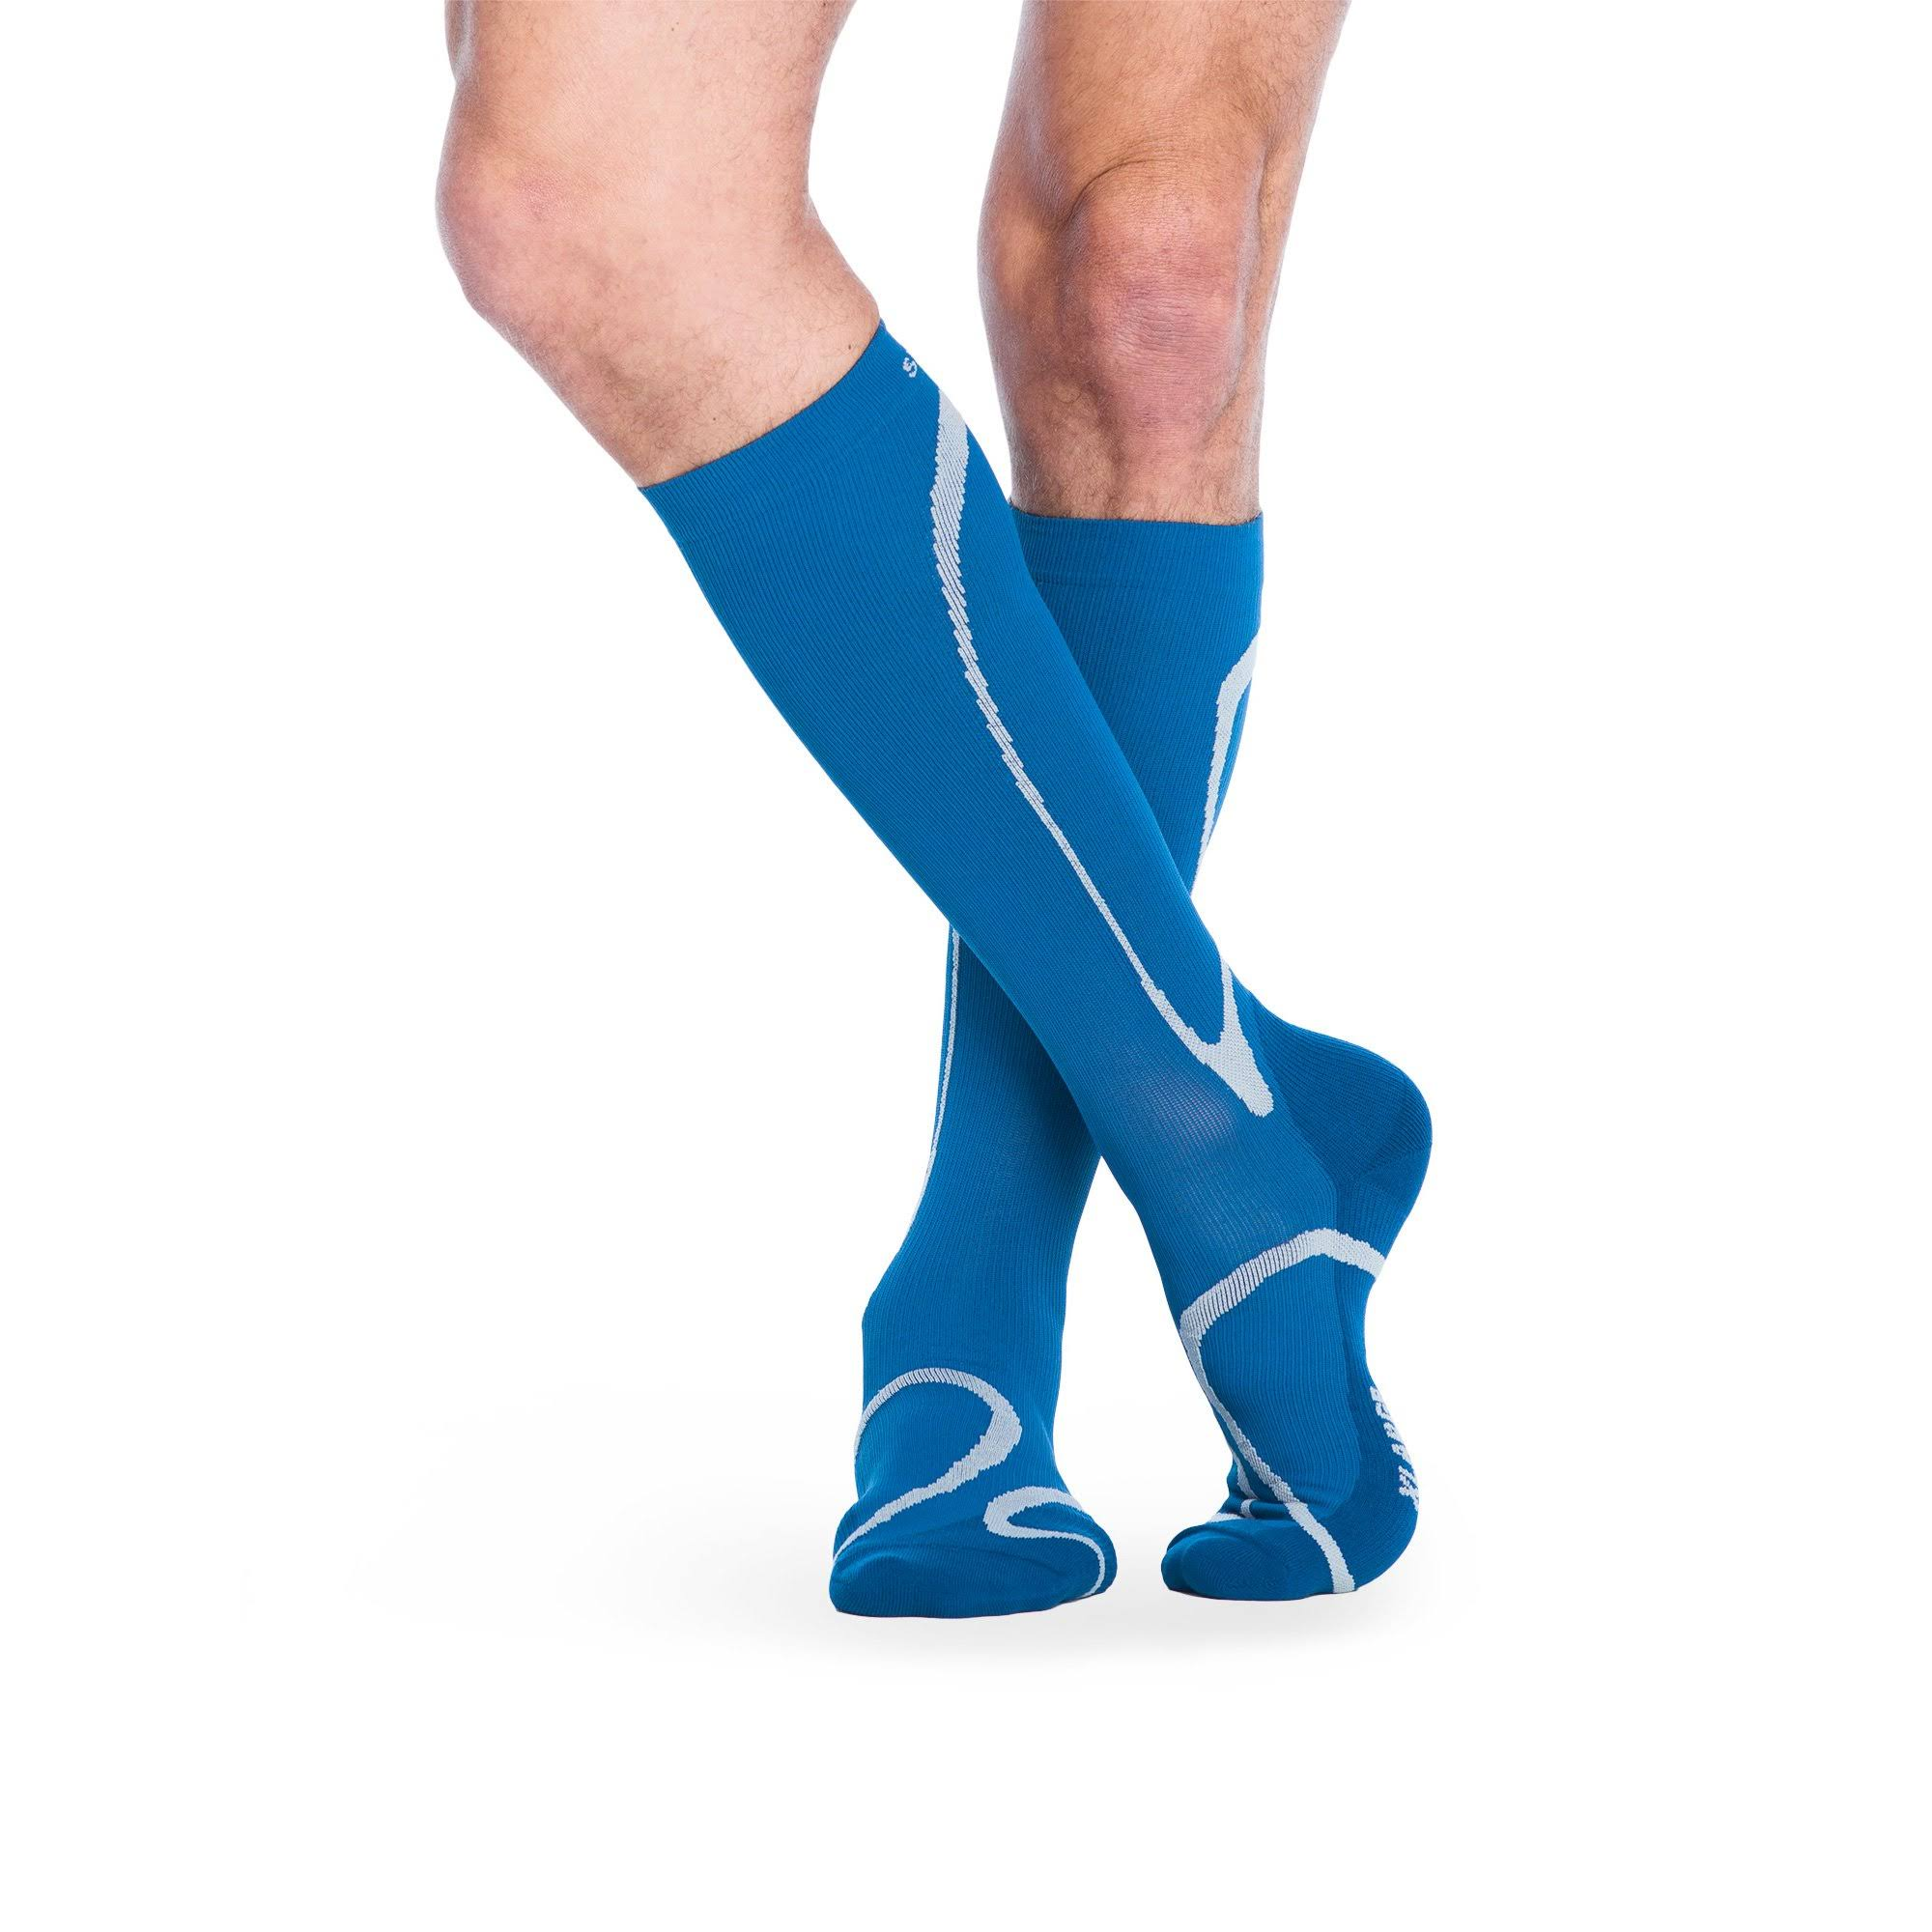 Sigvaris 412 Traverse Knee High Socks - 20-30 mmHg, Size: Small, Blue